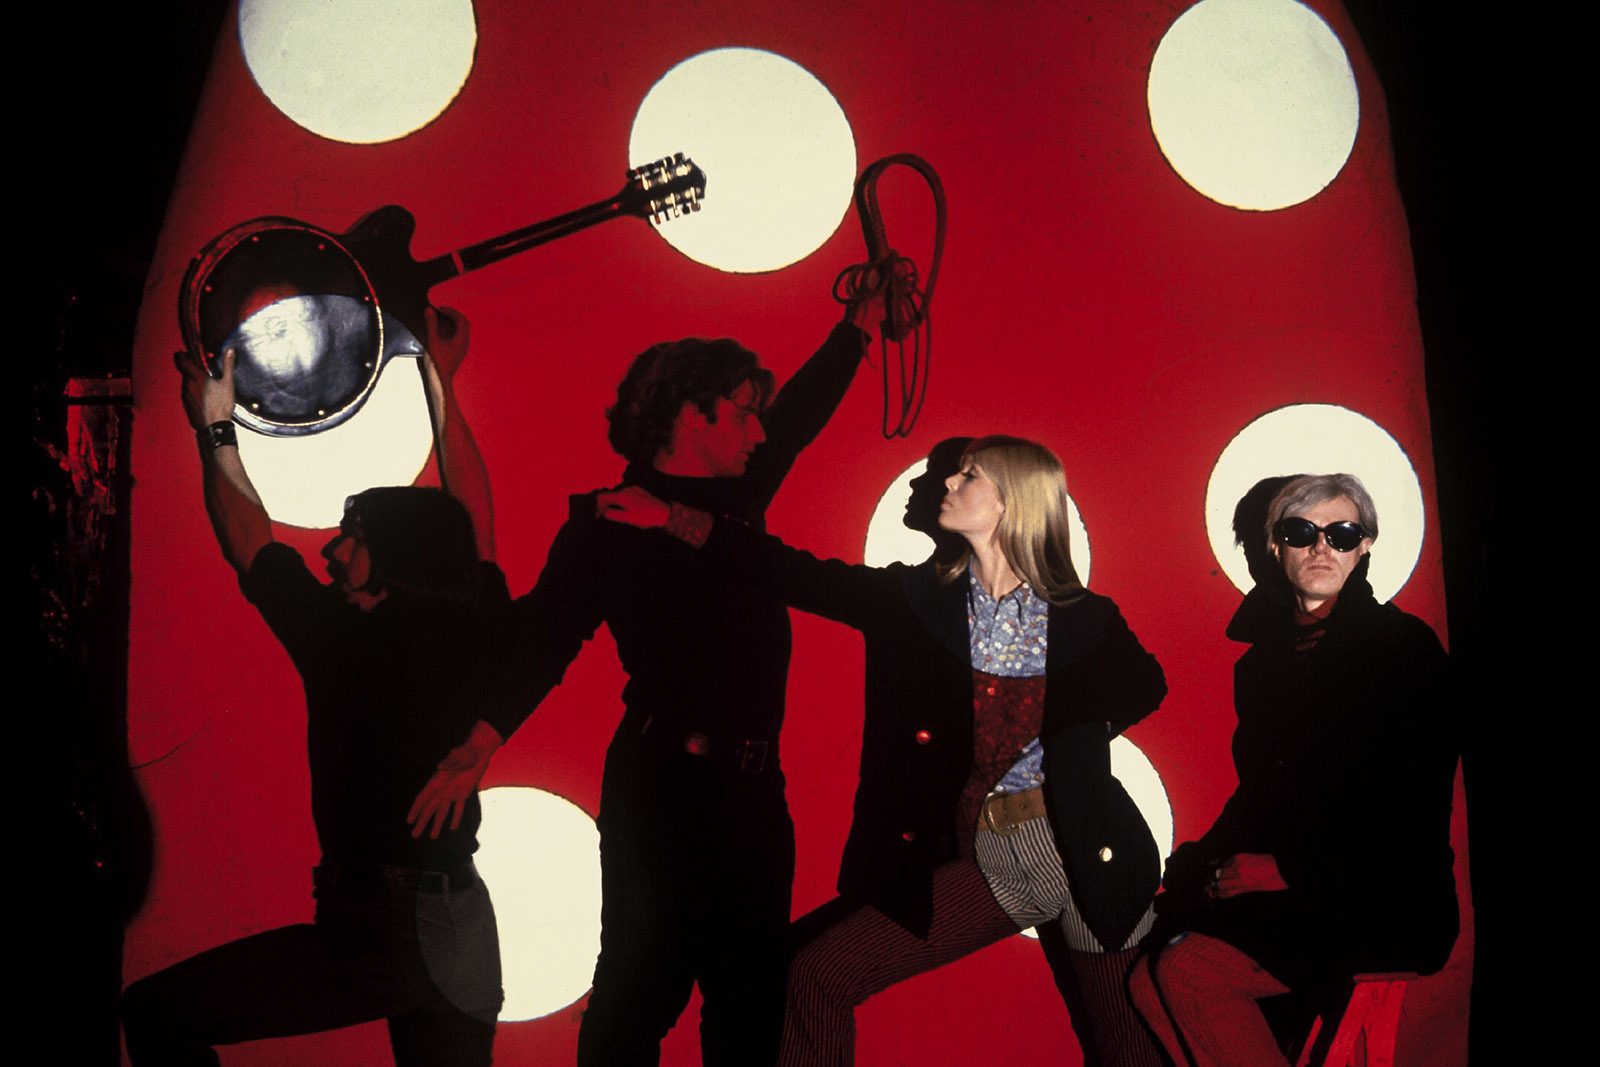 Members of the Velvet Underground John Cale and Nico, with Gerard Malaga and Andy Warhol, in New York City, circa 1966